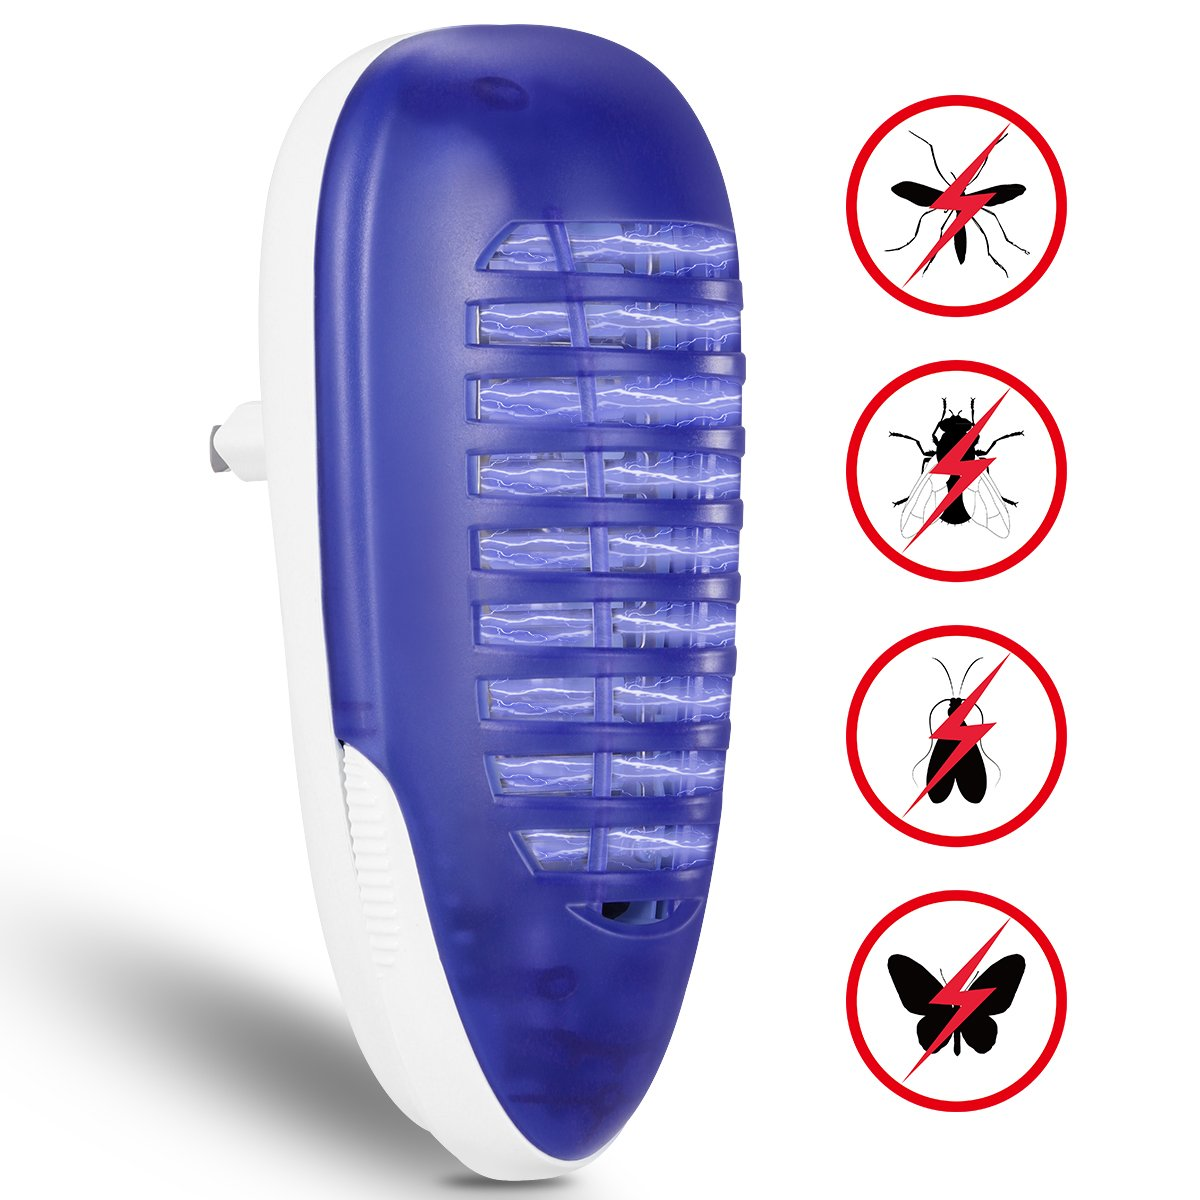 YUNLIGHTS Bug Zapper Light, Mosquito Insect Killer, 4W Plug in Electric Indoor Mosquito Trap Home Yard Garden Patio Office Store